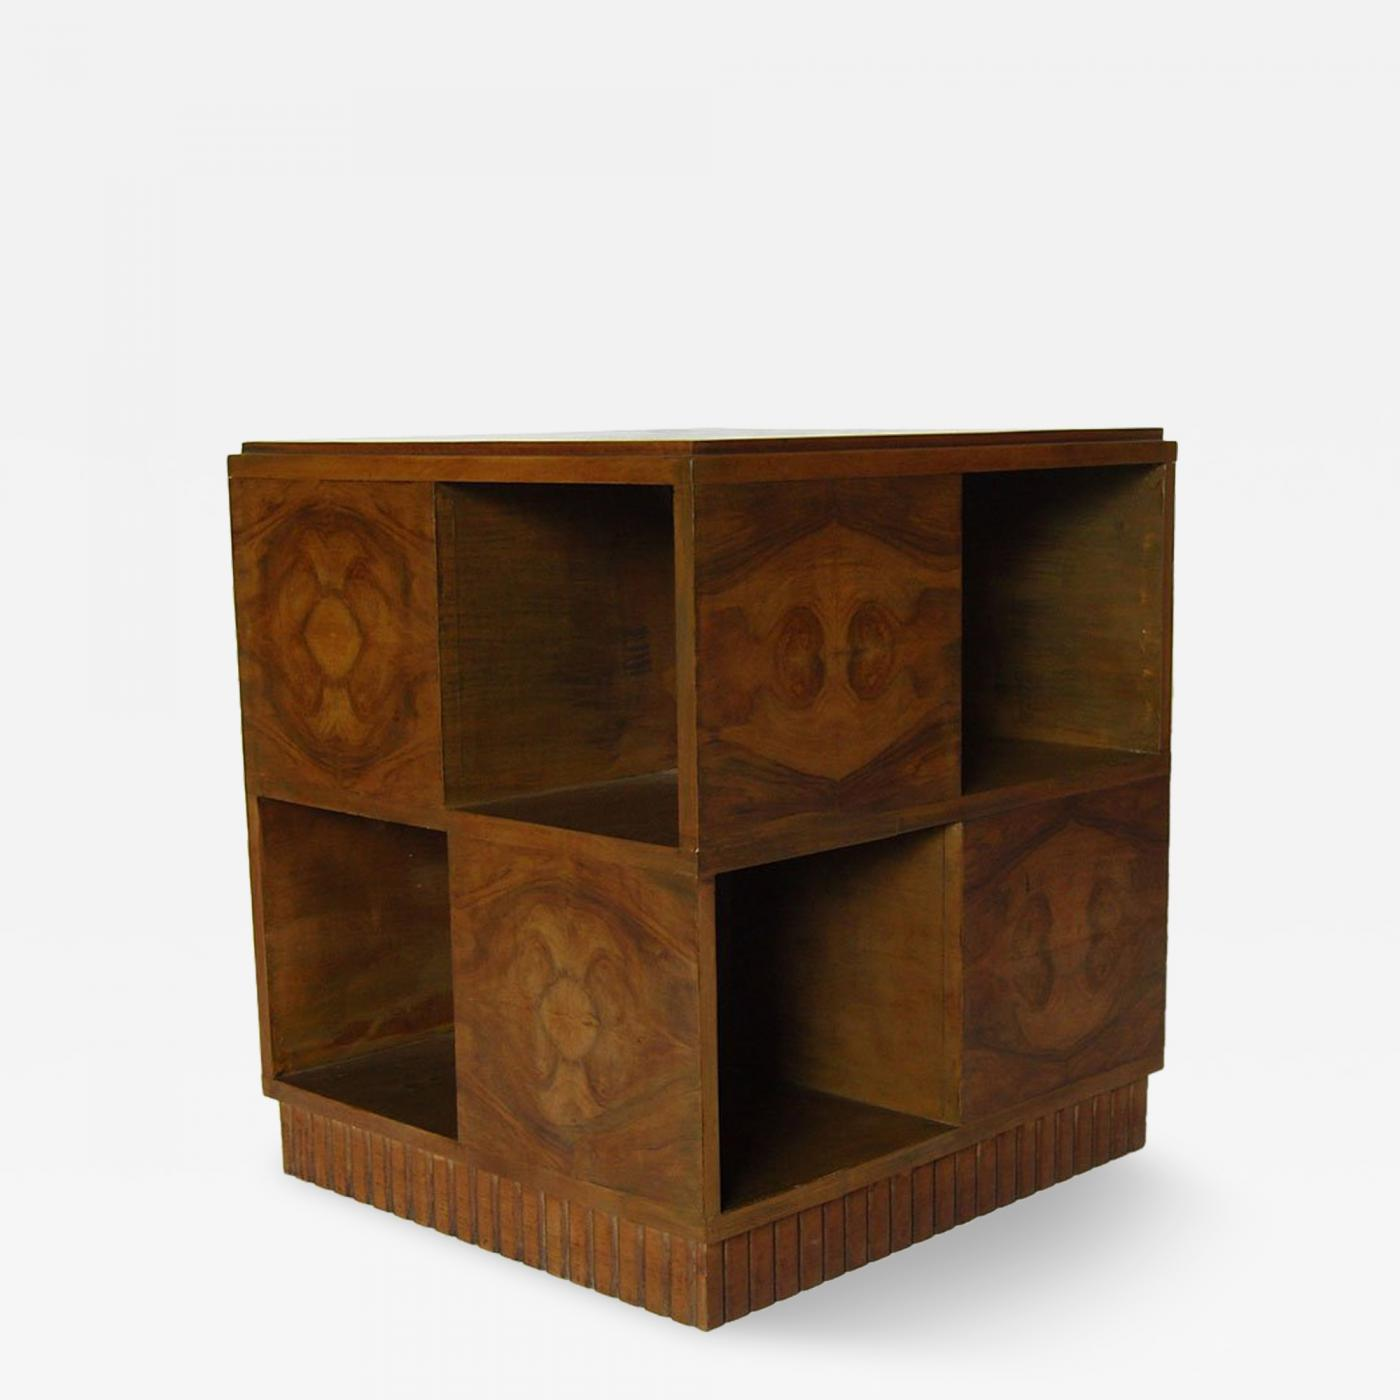 D I M Decoration Interieur Moderne French Art Deco Walnut Cubic Side Table By D I M